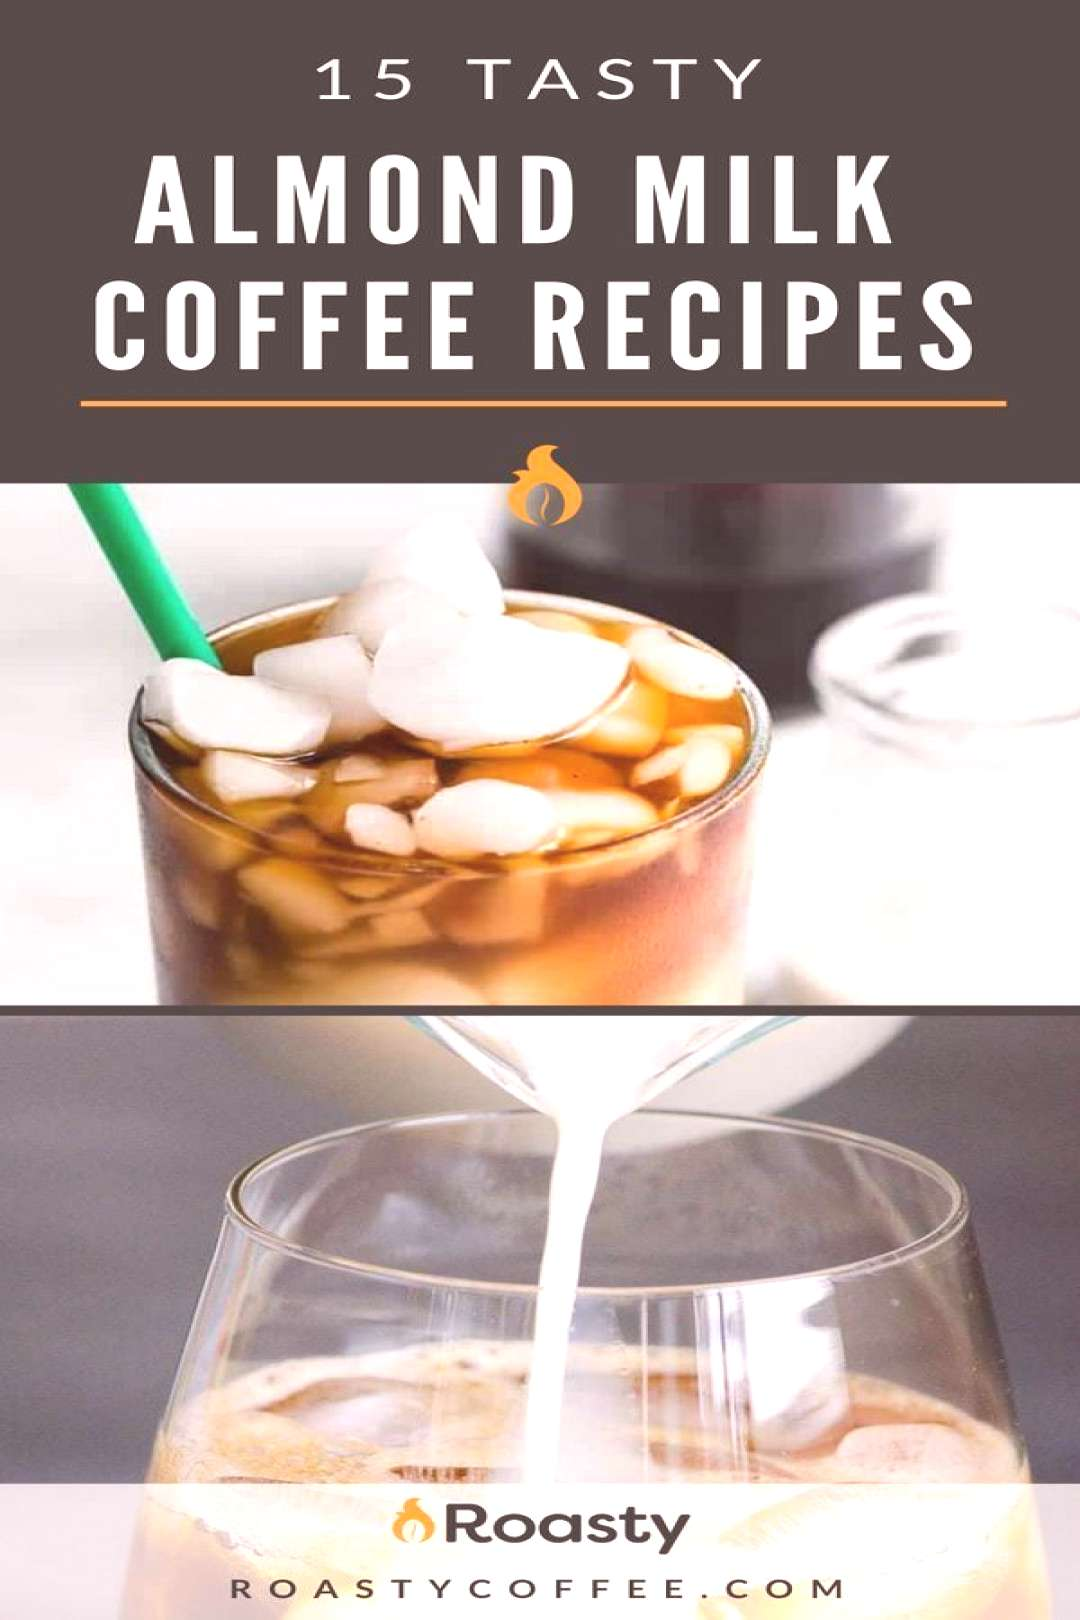 For people looking for a healthier coffee drink, check out our 15 tasty almond milk coffee recipes